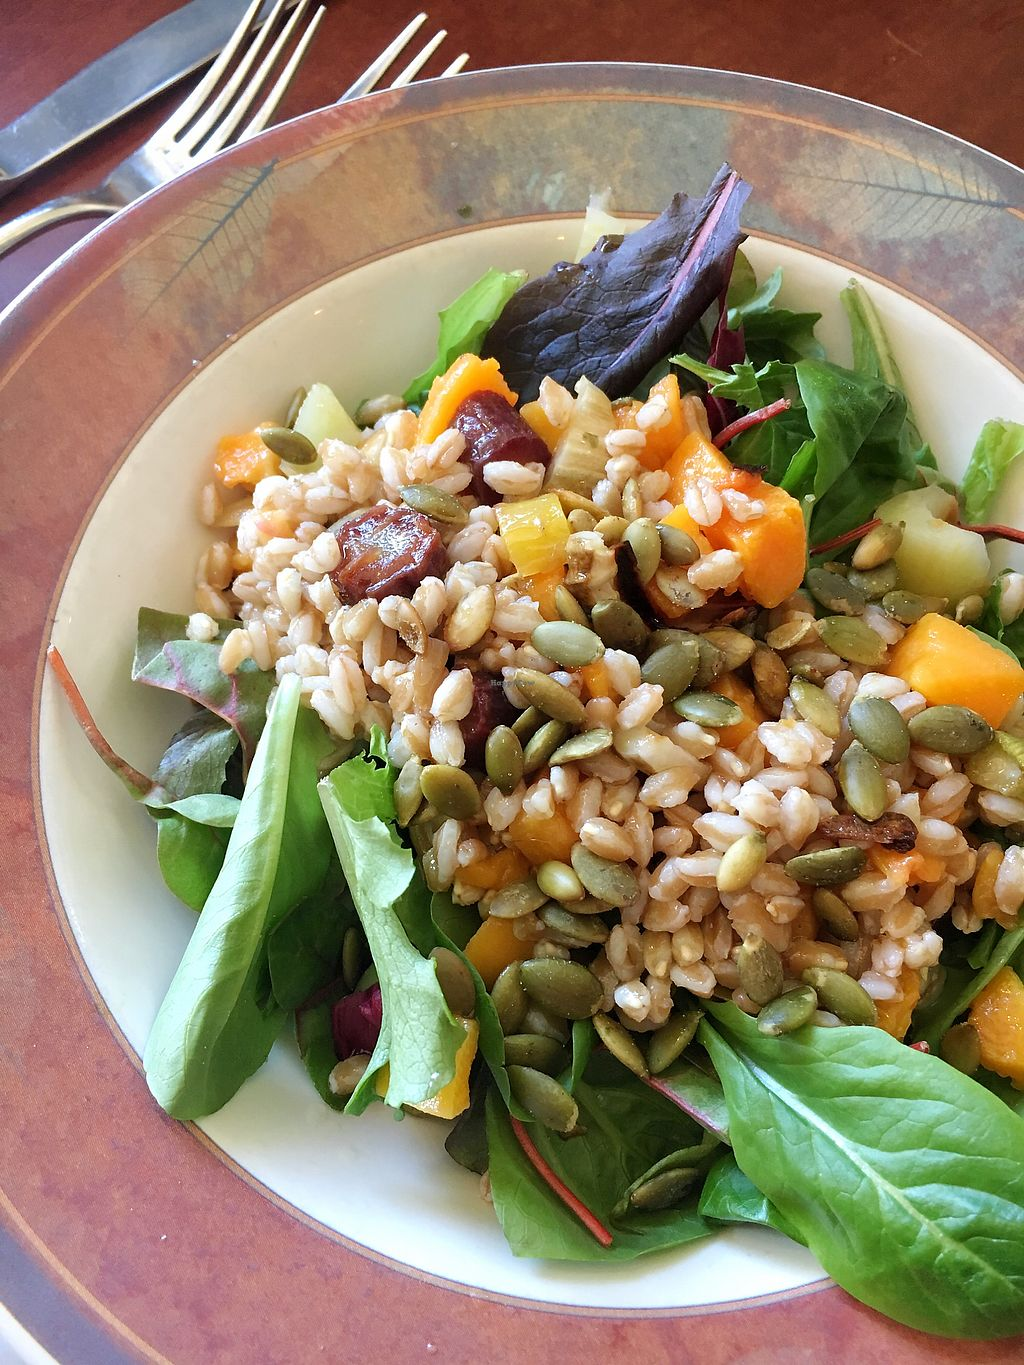 """Photo of Locavore Bistro  by <a href=""""/members/profile/remyelysee"""">remyelysee</a> <br/>Squash Salad <br/> March 17, 2018  - <a href='/contact/abuse/image/73564/371880'>Report</a>"""